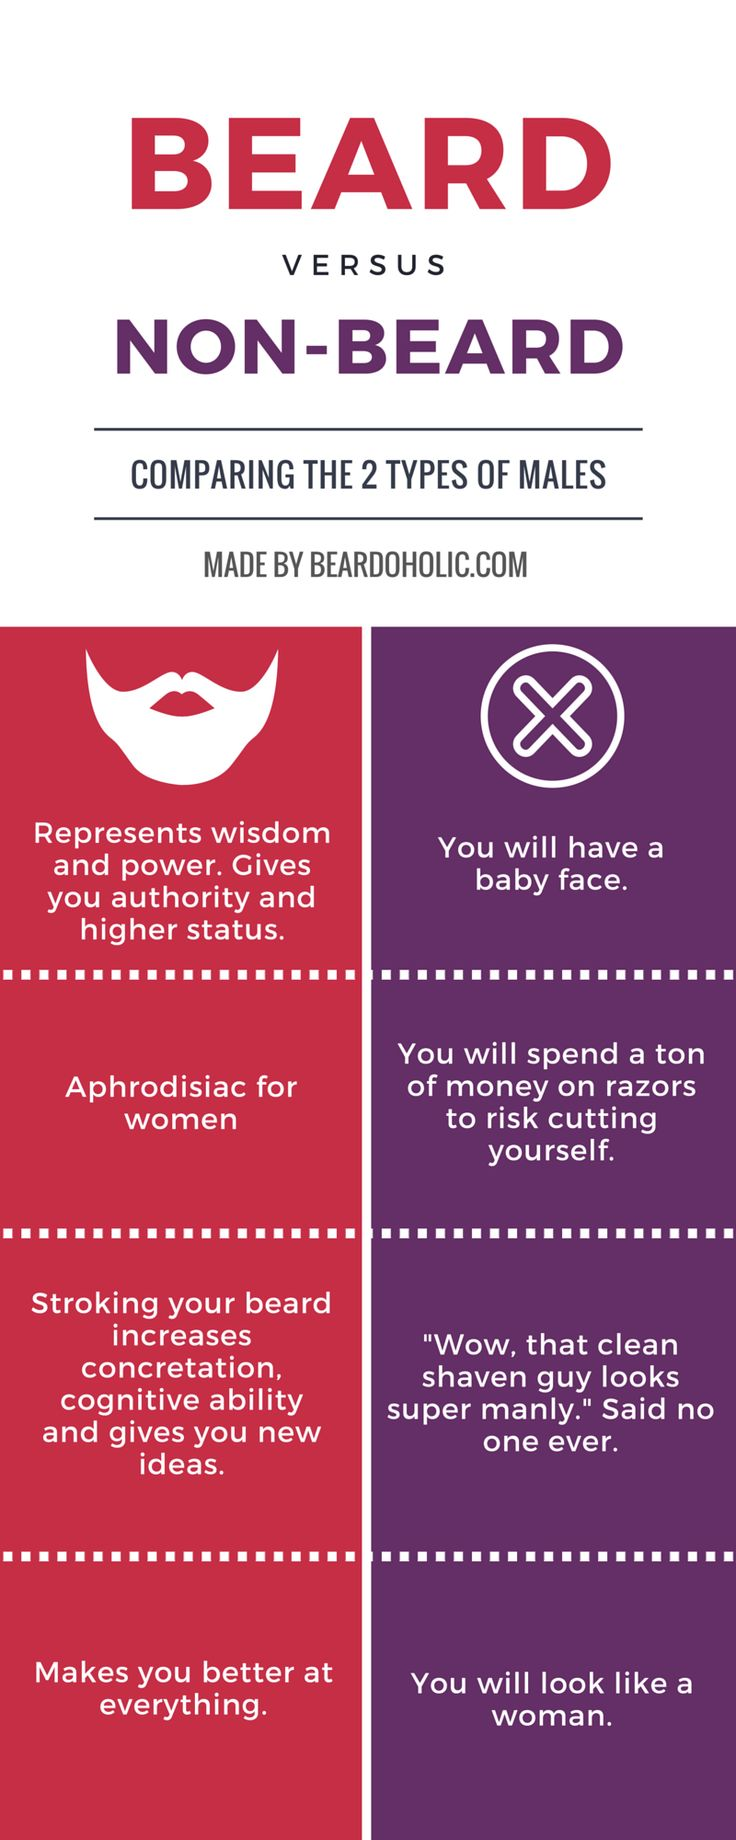 Beard vs Non-Beard on beardoholic.com